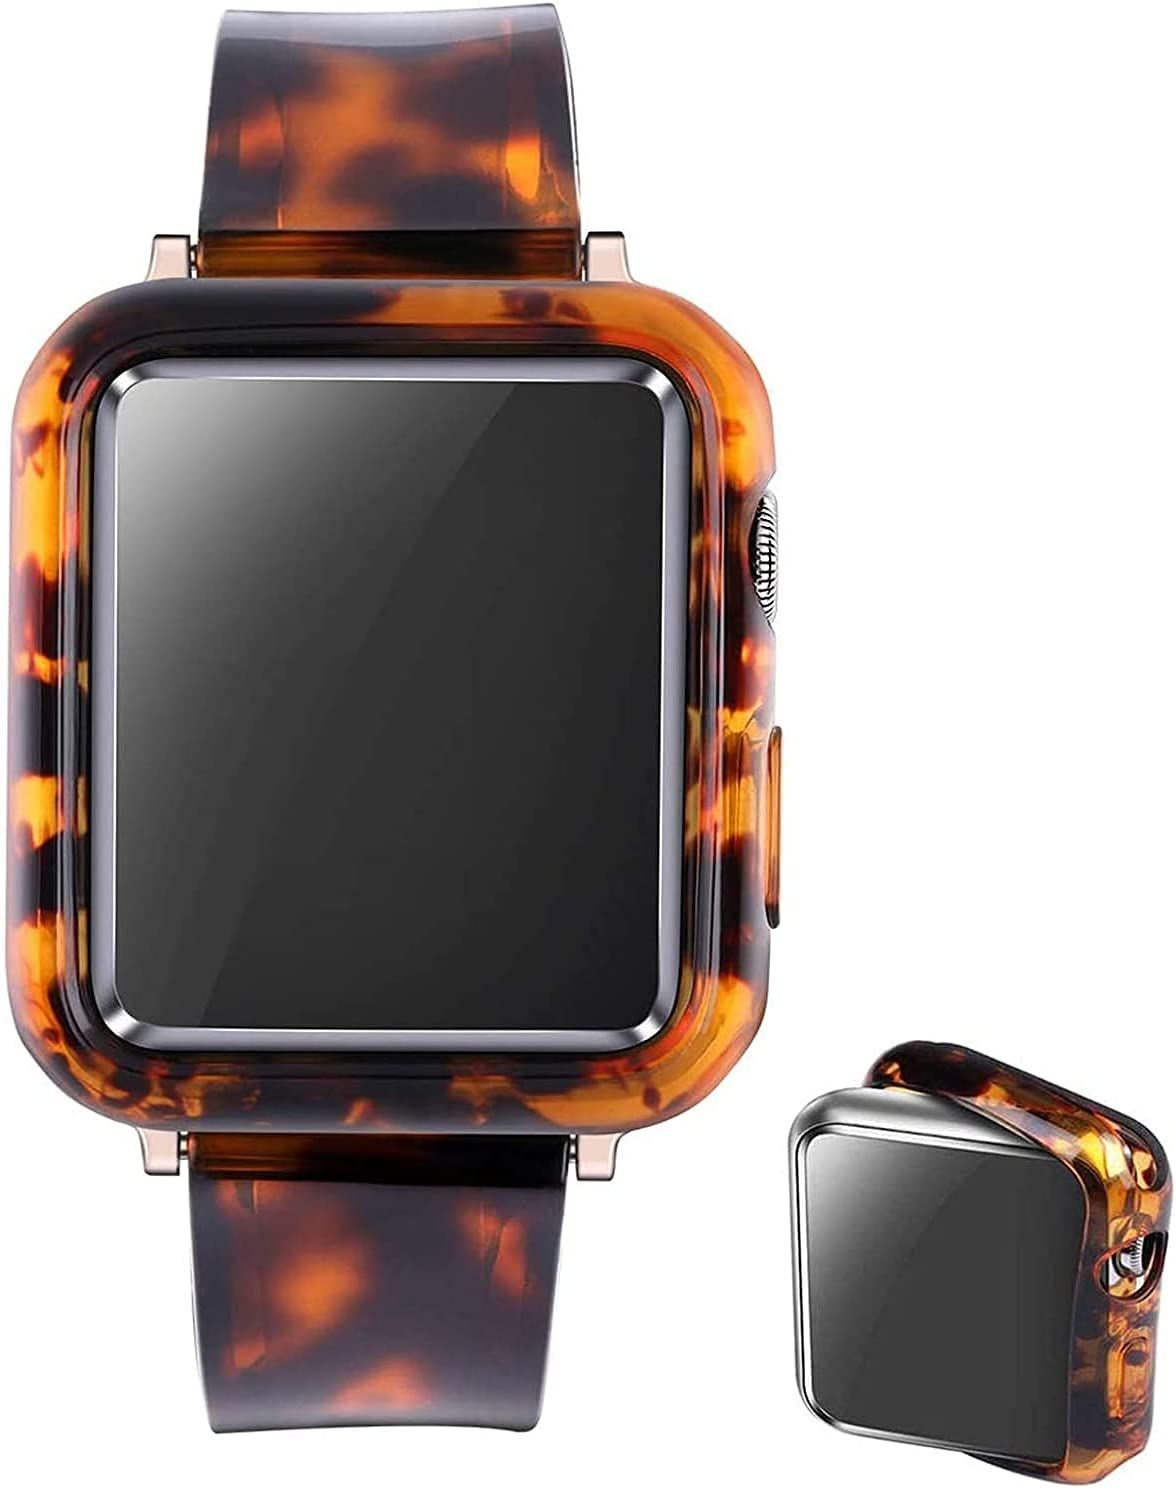 Omter Band with Bumper Compatible with Apple Watch 38mm 40mm 42mm 44mm, Men Women Soft Silicone Wristband Strap with case for iWatch Series 6/5/4/3/2/1/SE(Rose Gold Tortoise-Tone, 38mm)